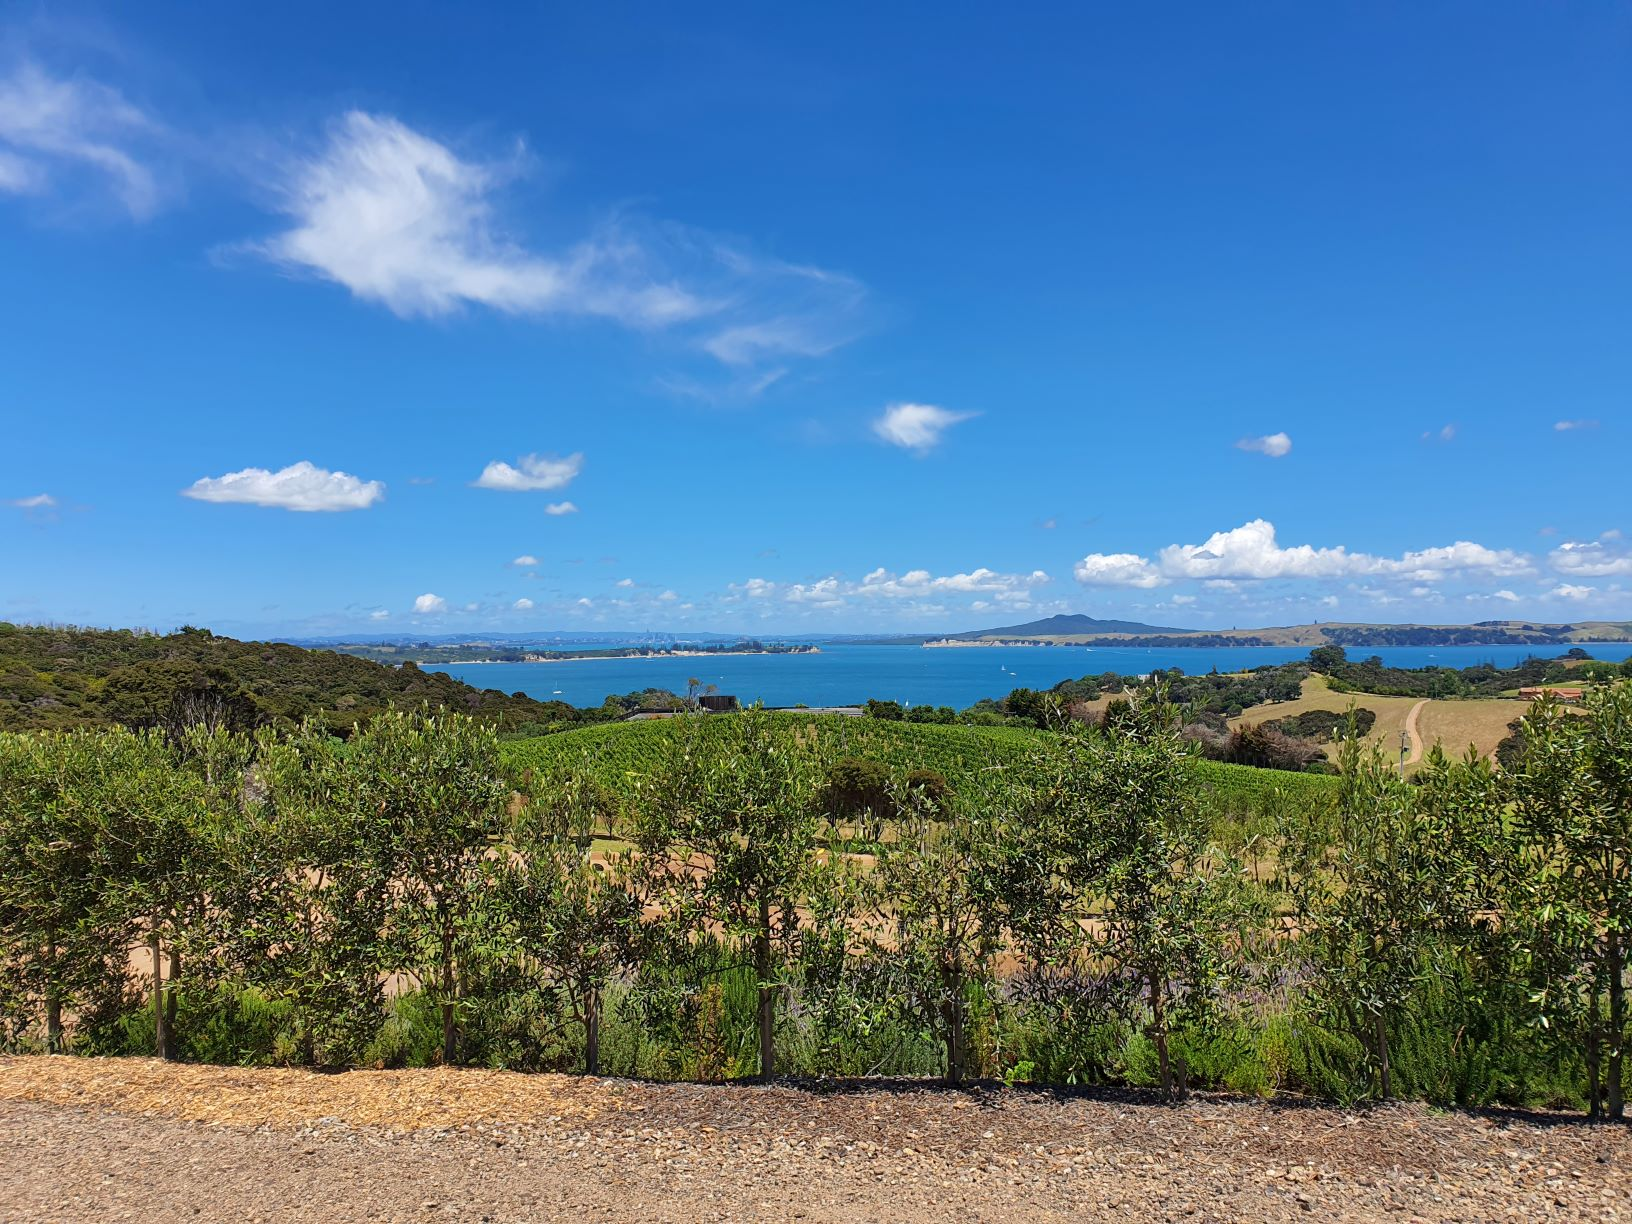 The view from Mudbrick Winery